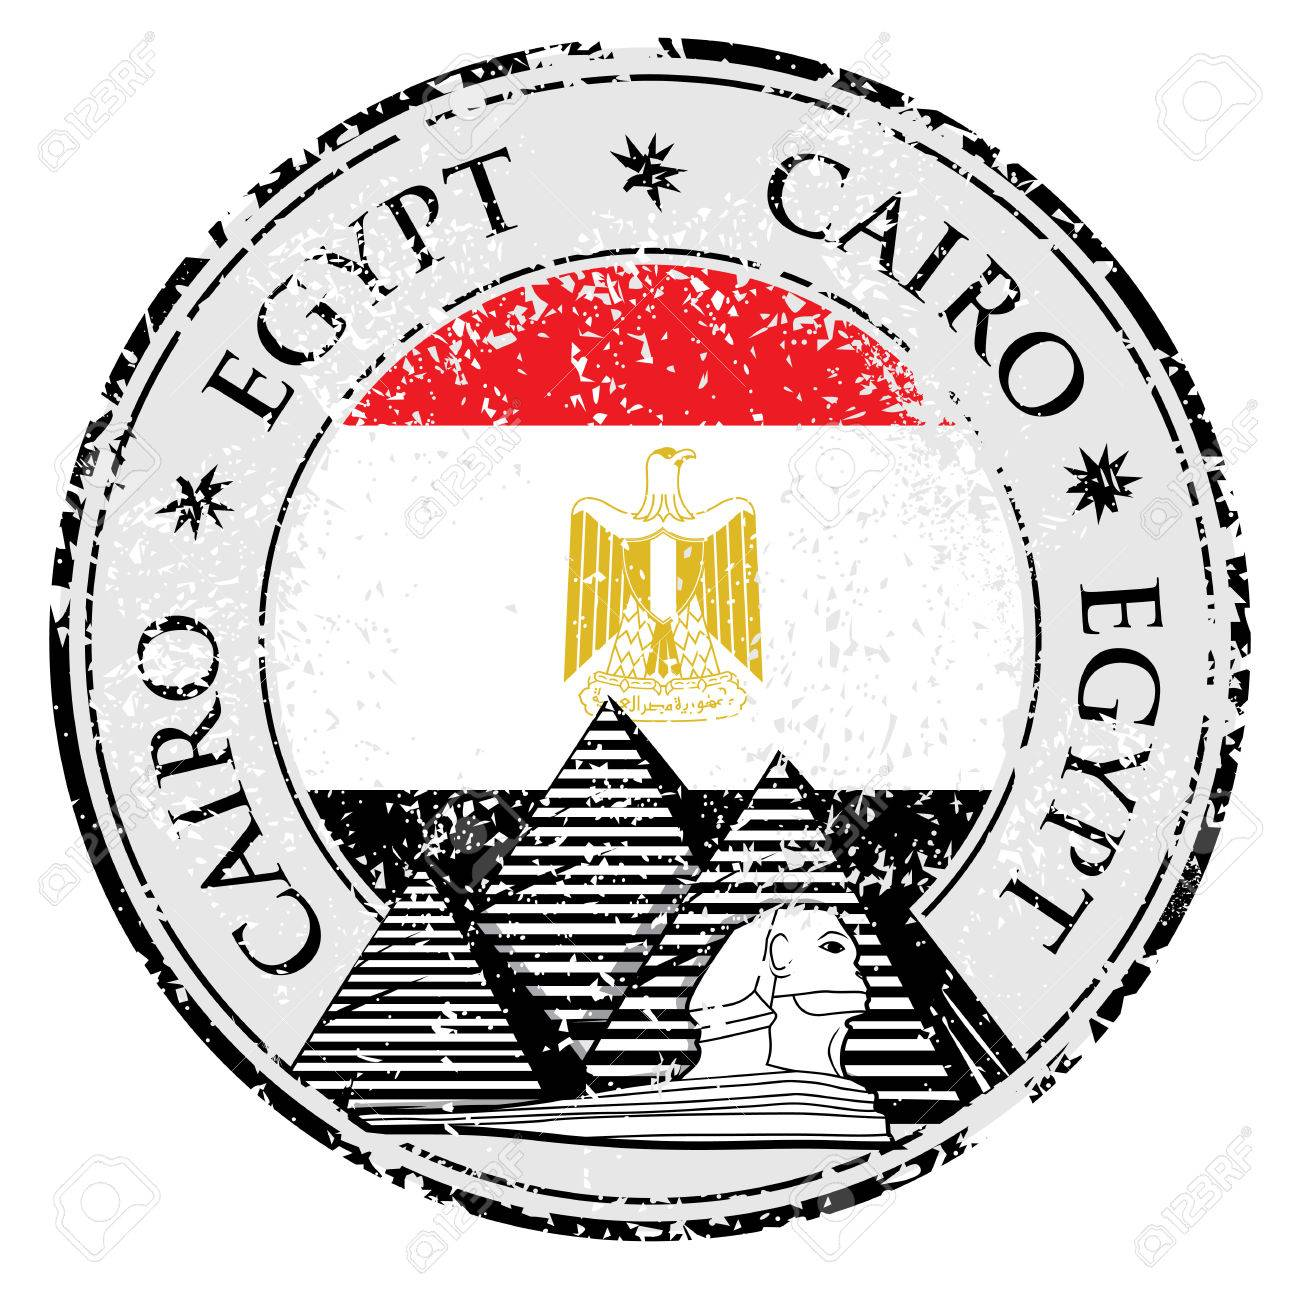 grunge rubber st with pyramid and the word cairo egypt inside Map of Egyptian Pyramids grunge rubber st with pyramid and the word cairo egypt inside vector illustration stock